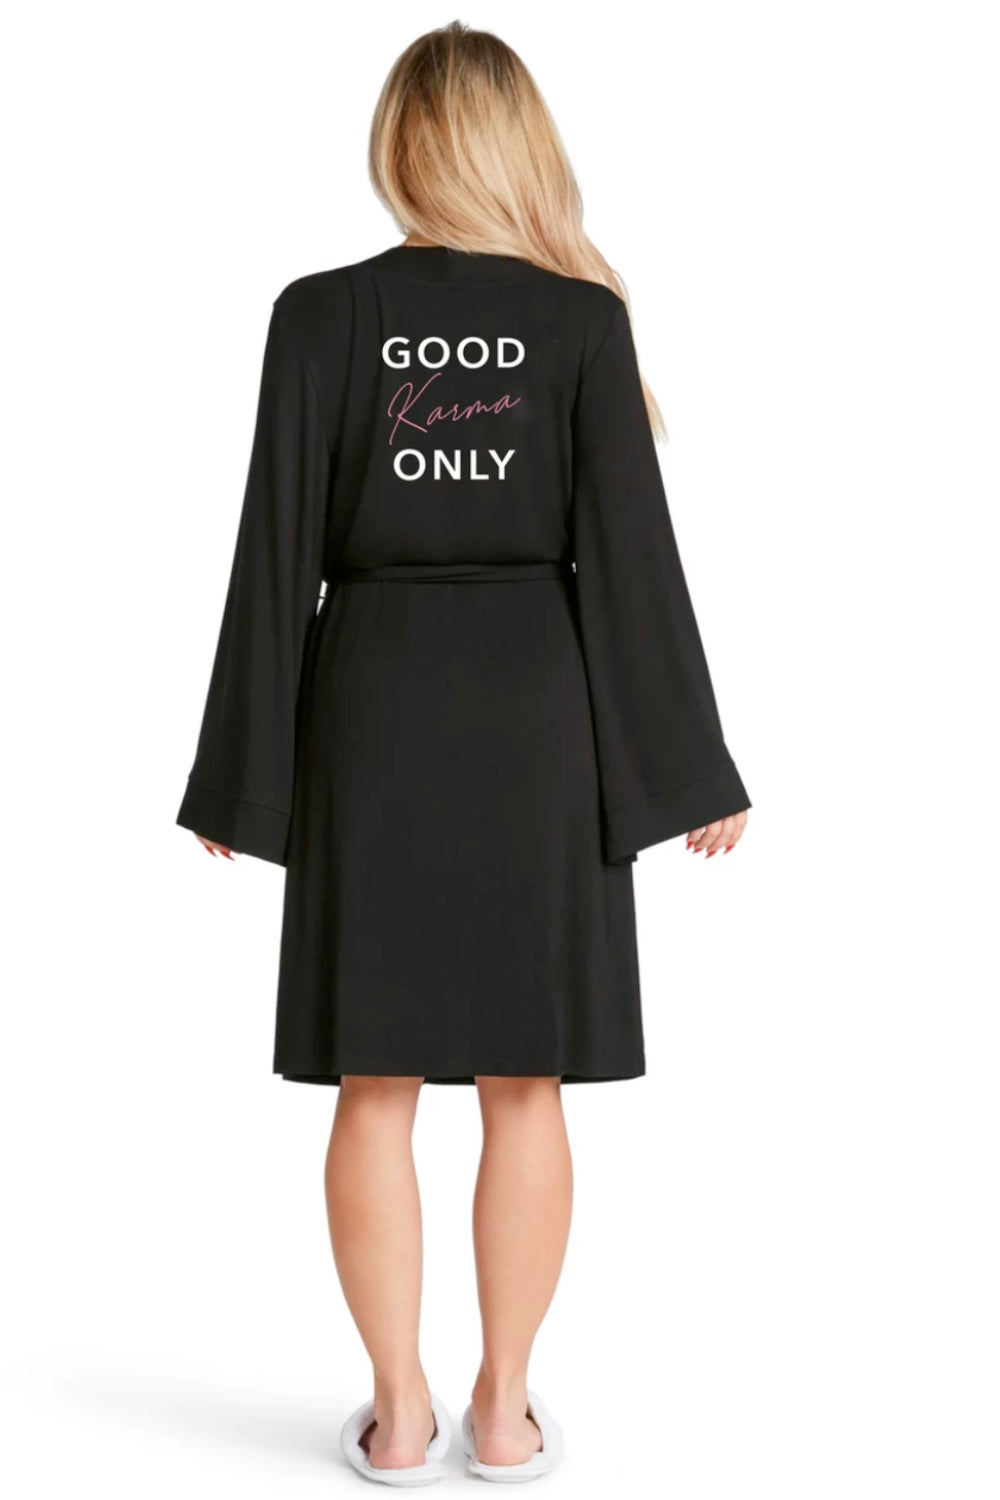 LIGHTWEIGHT ROBE - Good Karma Only